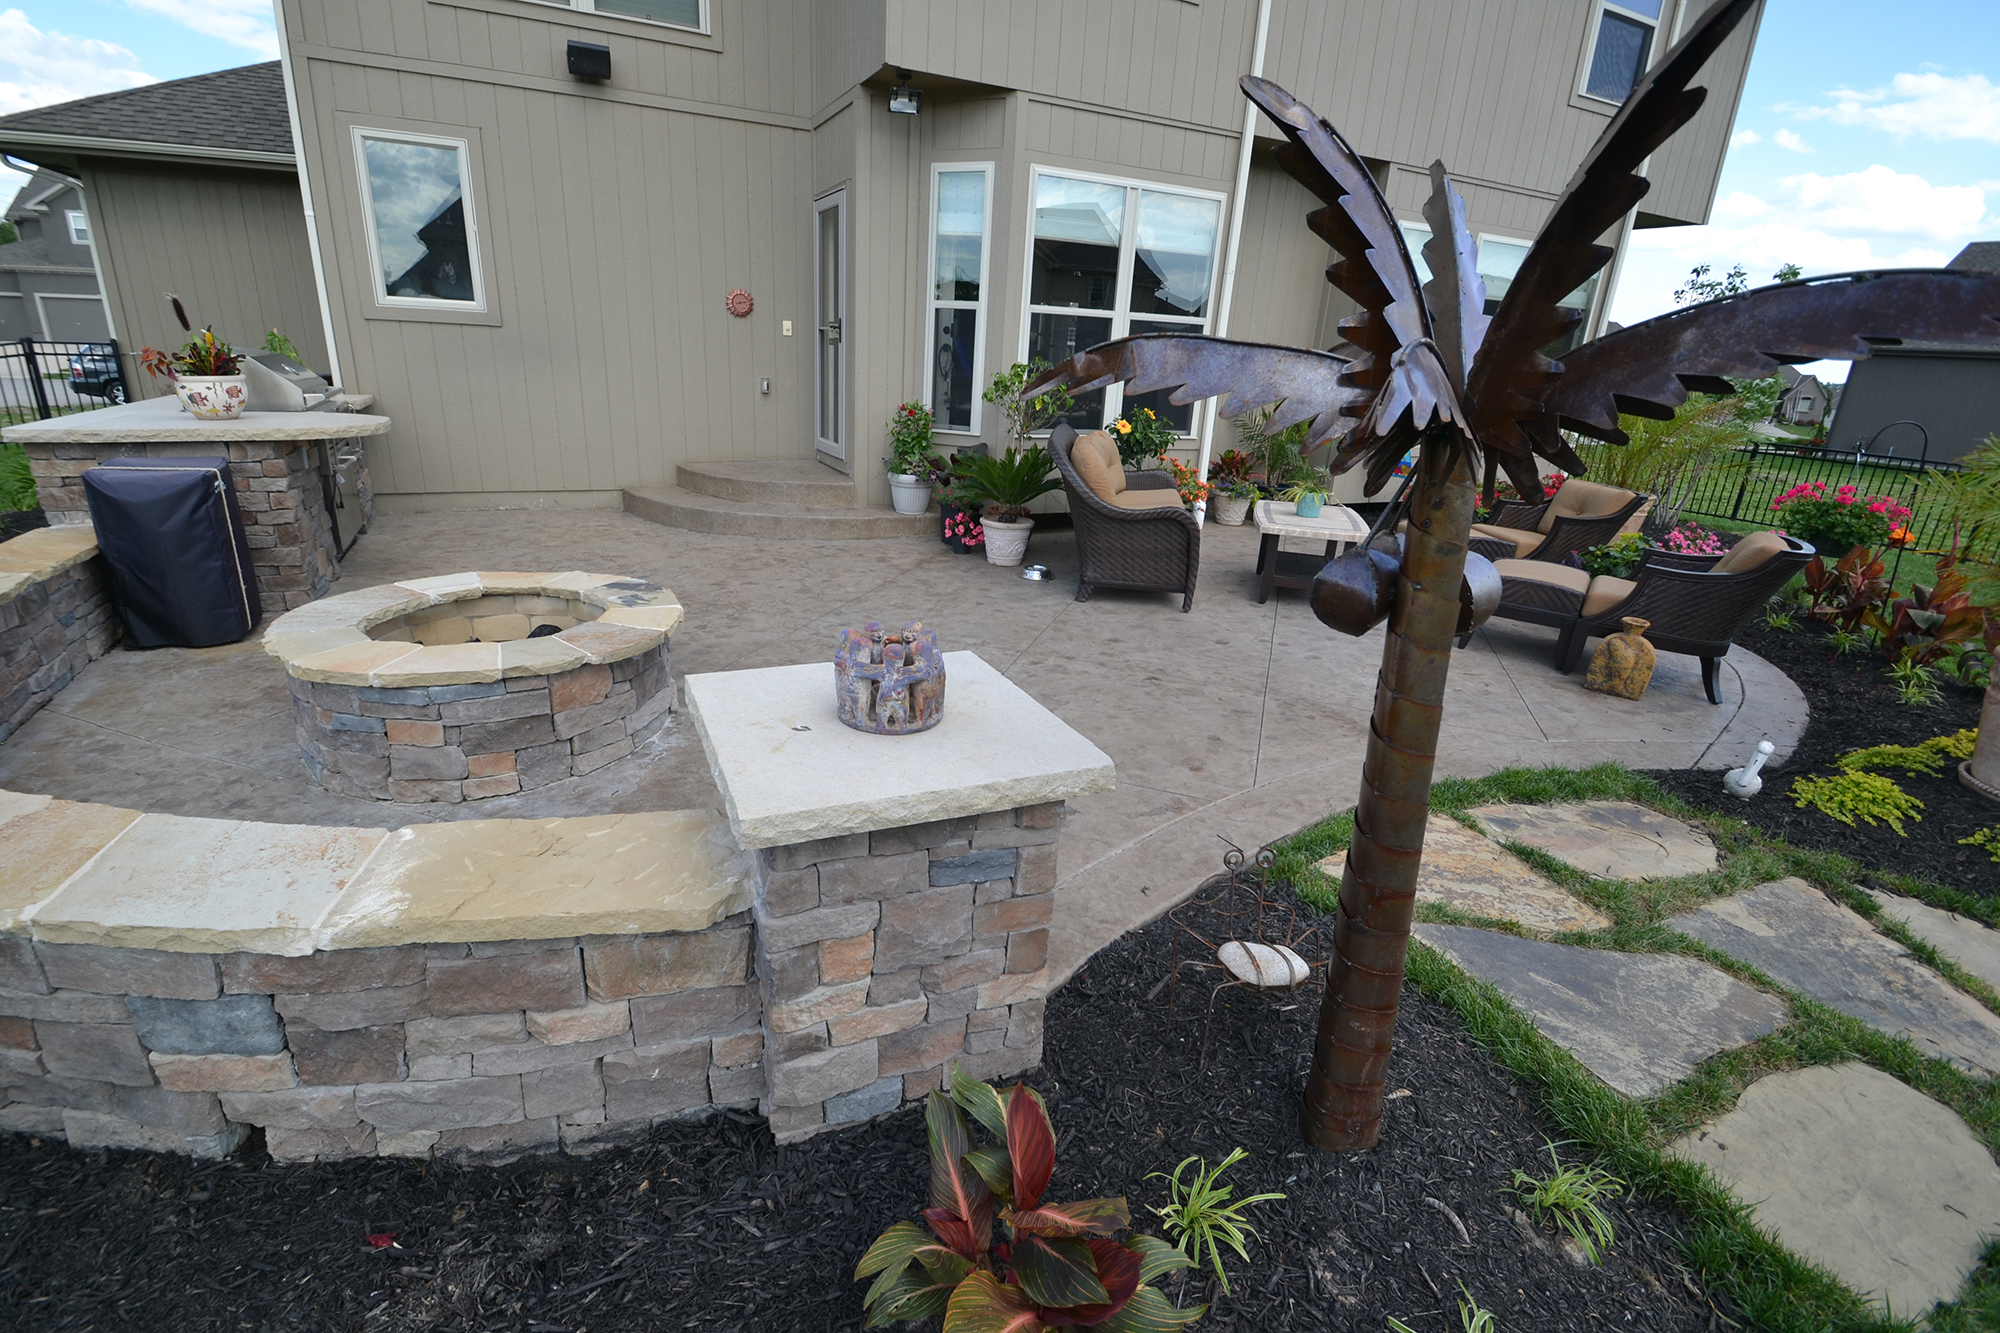 Aesthetic Concrete Designs can make a custom concrete outdoor living area with stamped concrete, concrete walls, and more.